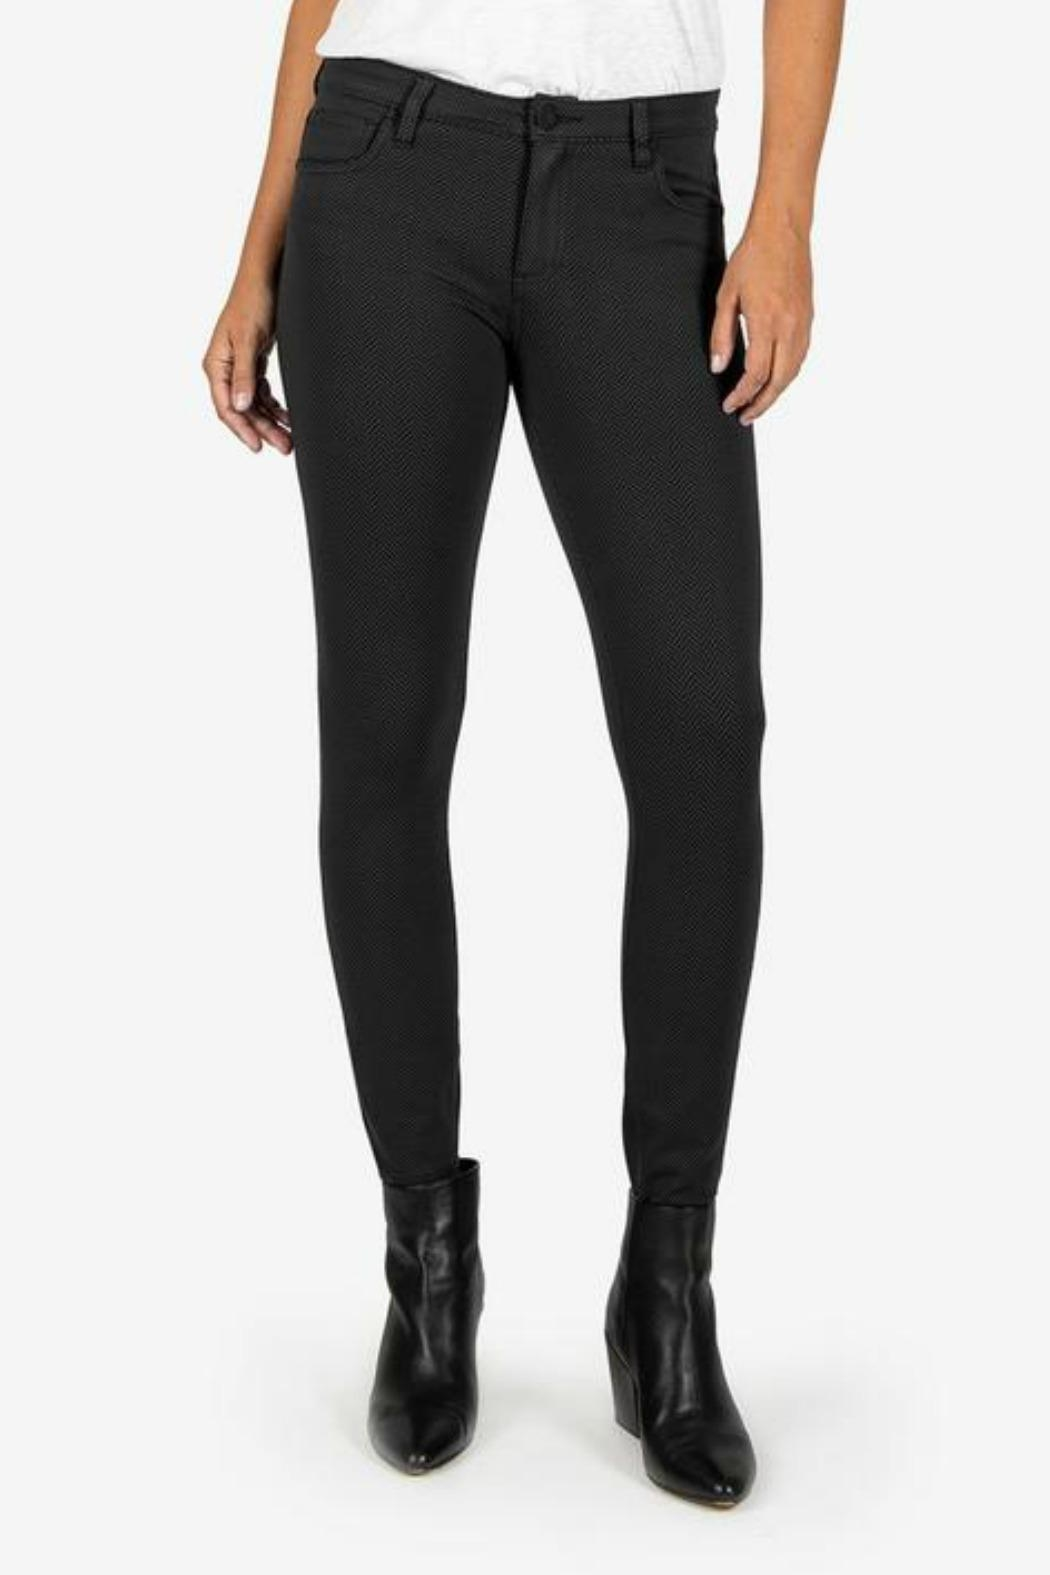 Kut from the Kloth Donna Ponte Ankle-Skinny - Main Image